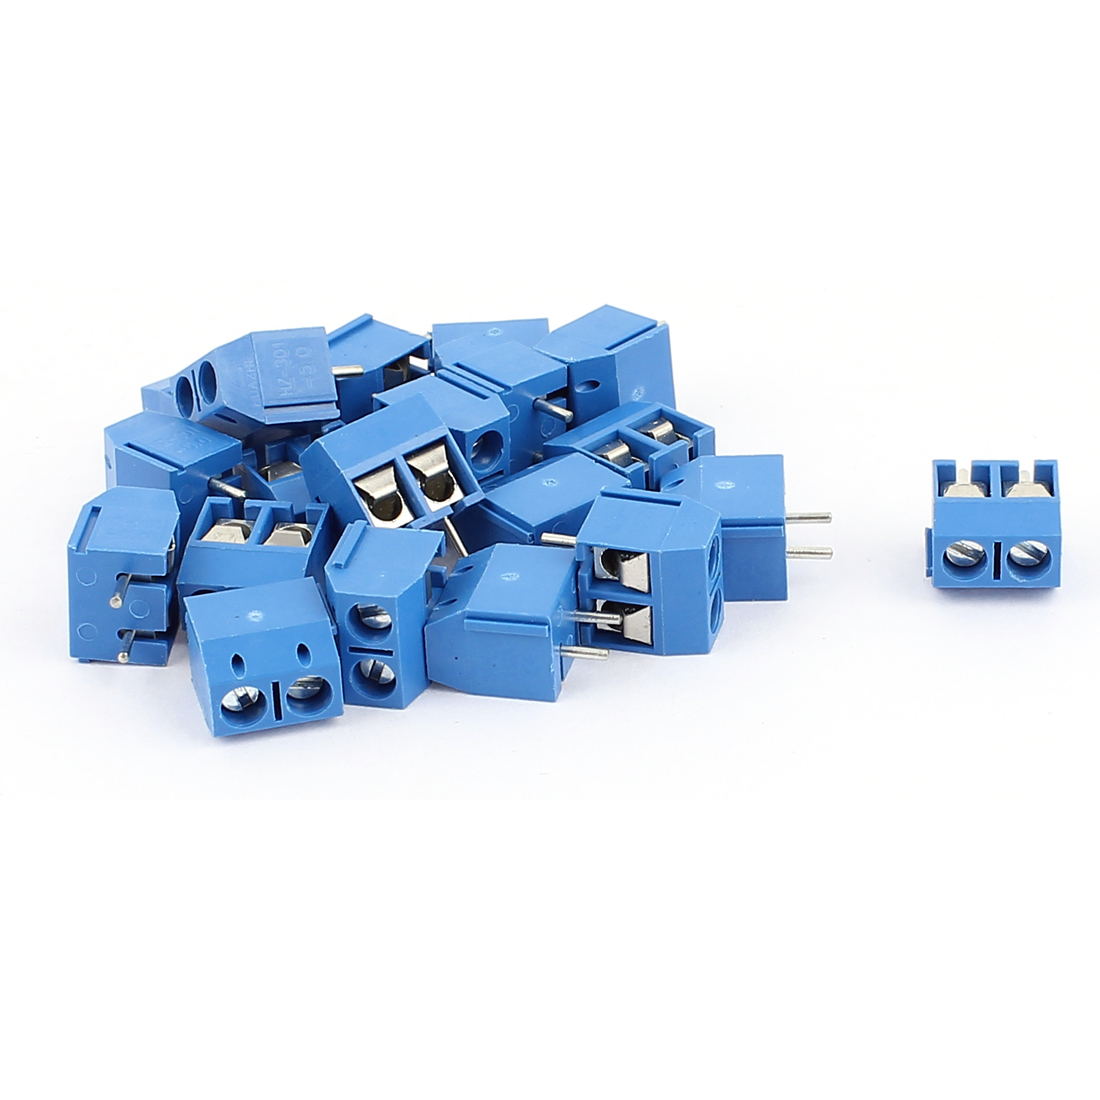 20Pcs AC 300V 10A HZ301-5.0 2 Pins 5mm Pinch PCB Mounting Screw Terminal Block Connector